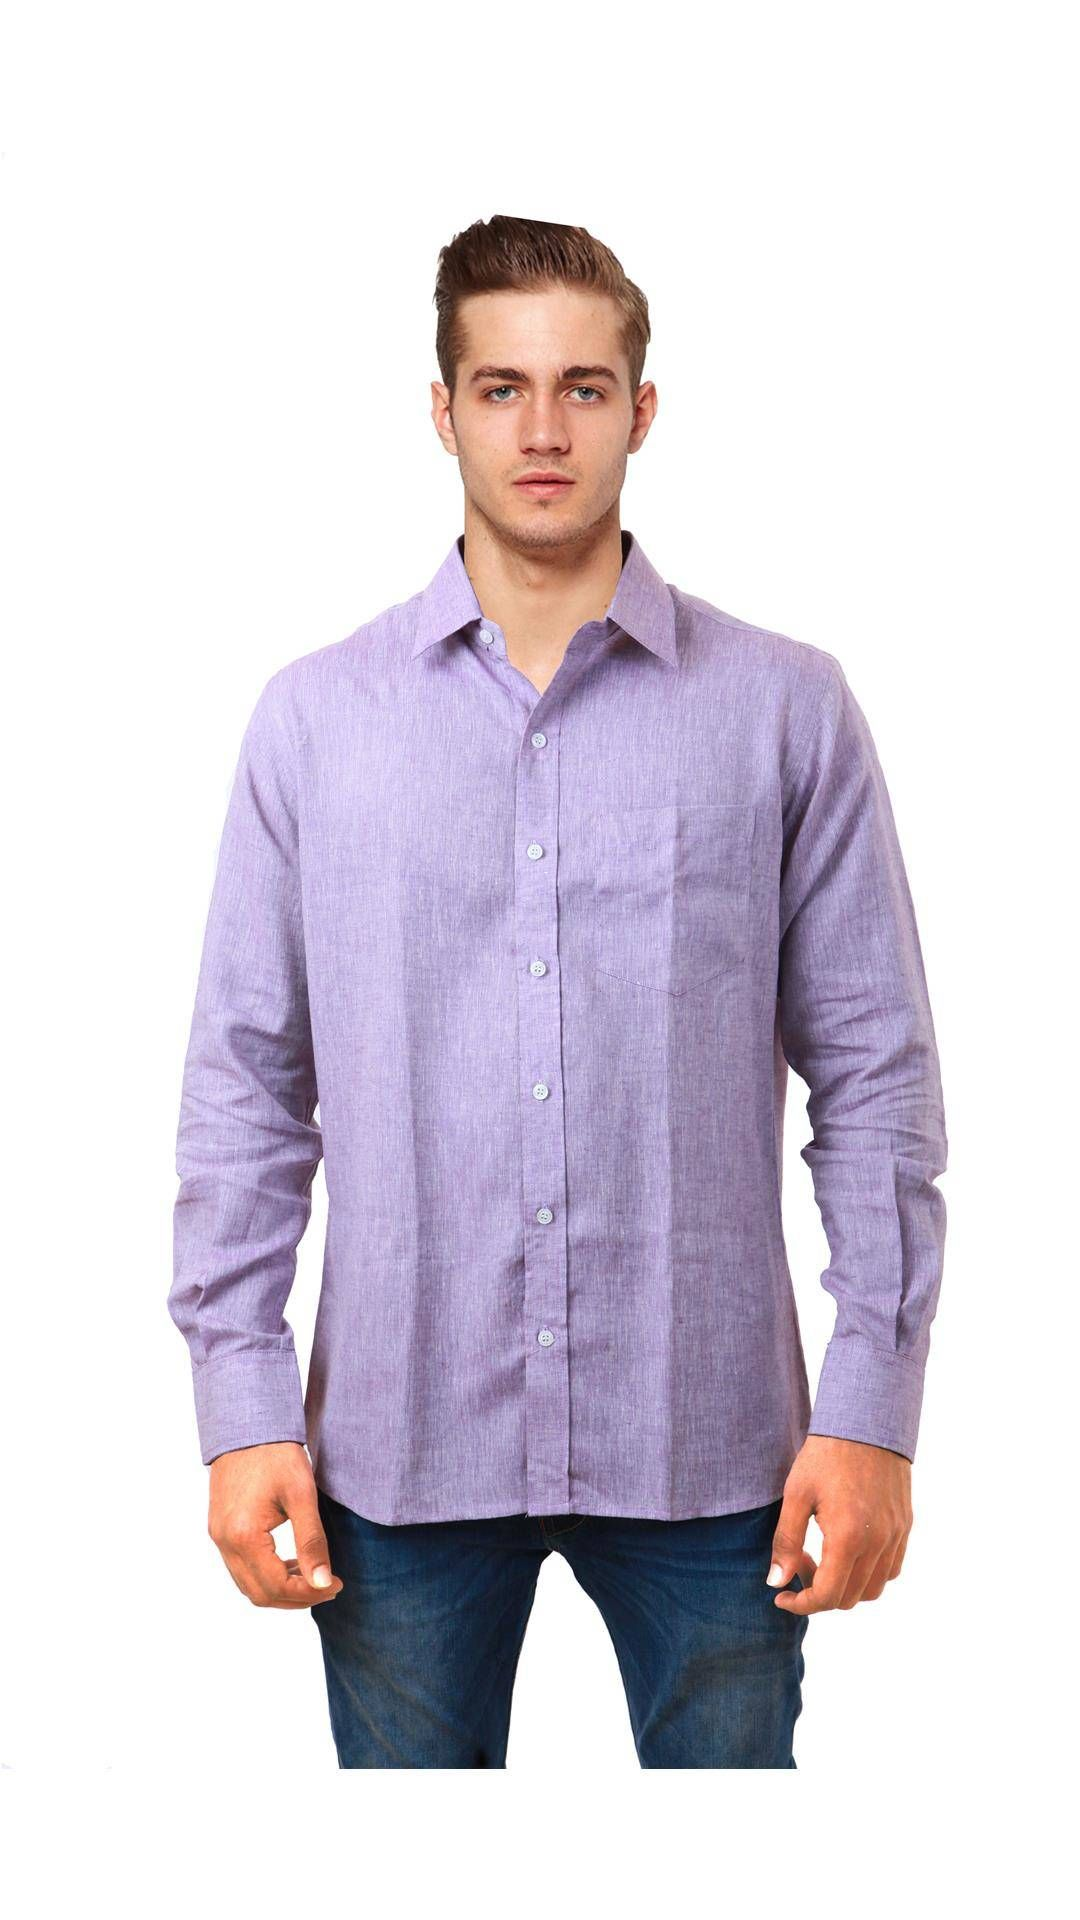 8704a290874 Buy Pure Linen Shirts Online India - DREAMWORKS